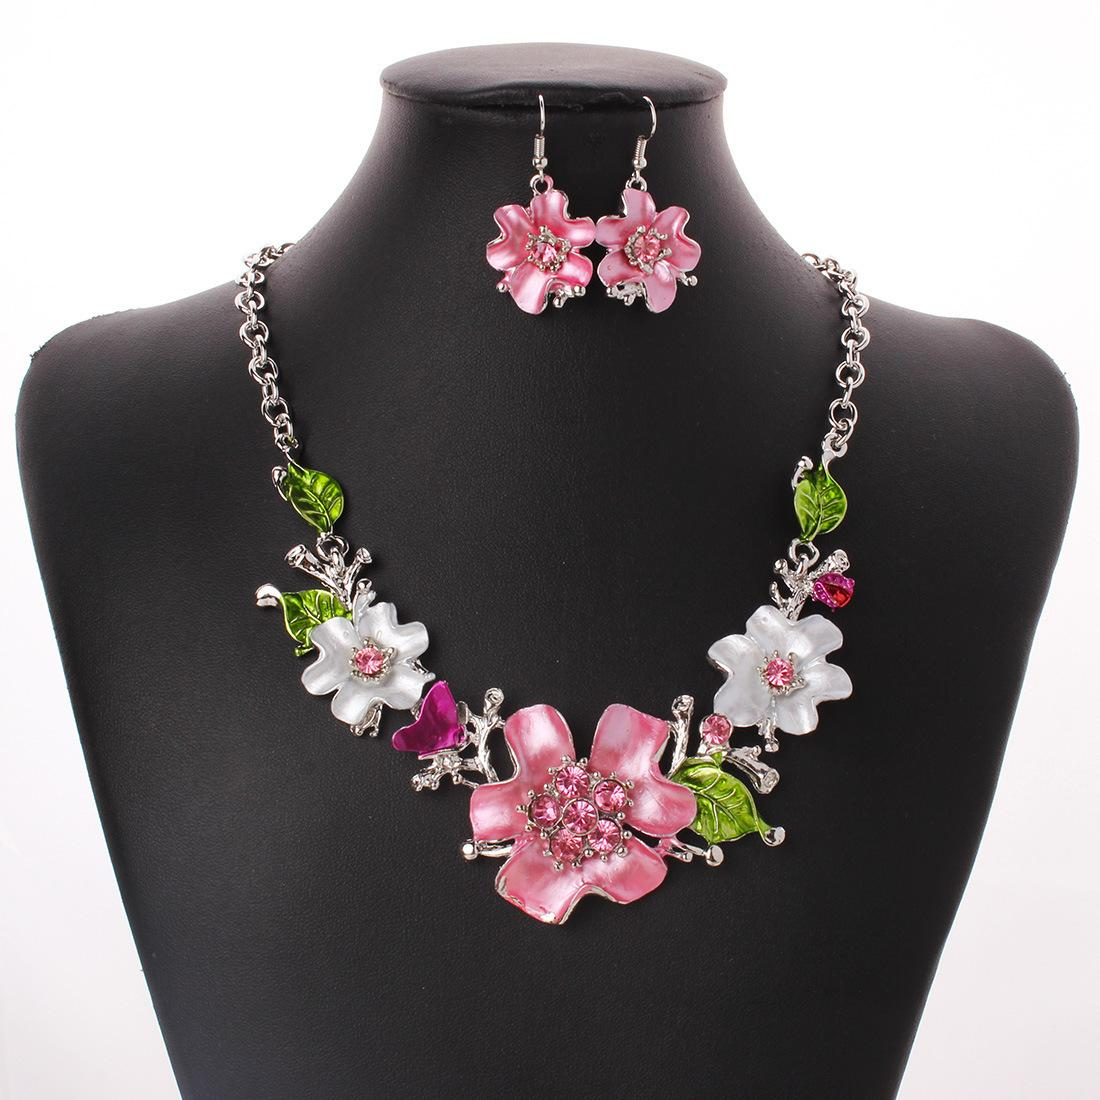 5eedcf39a4606 Bohemia Fashion Women Costume Jewelry sets Pink Crystal Enamel Flower  Pendant Necklace Earrings French Romantic Party Jewelry